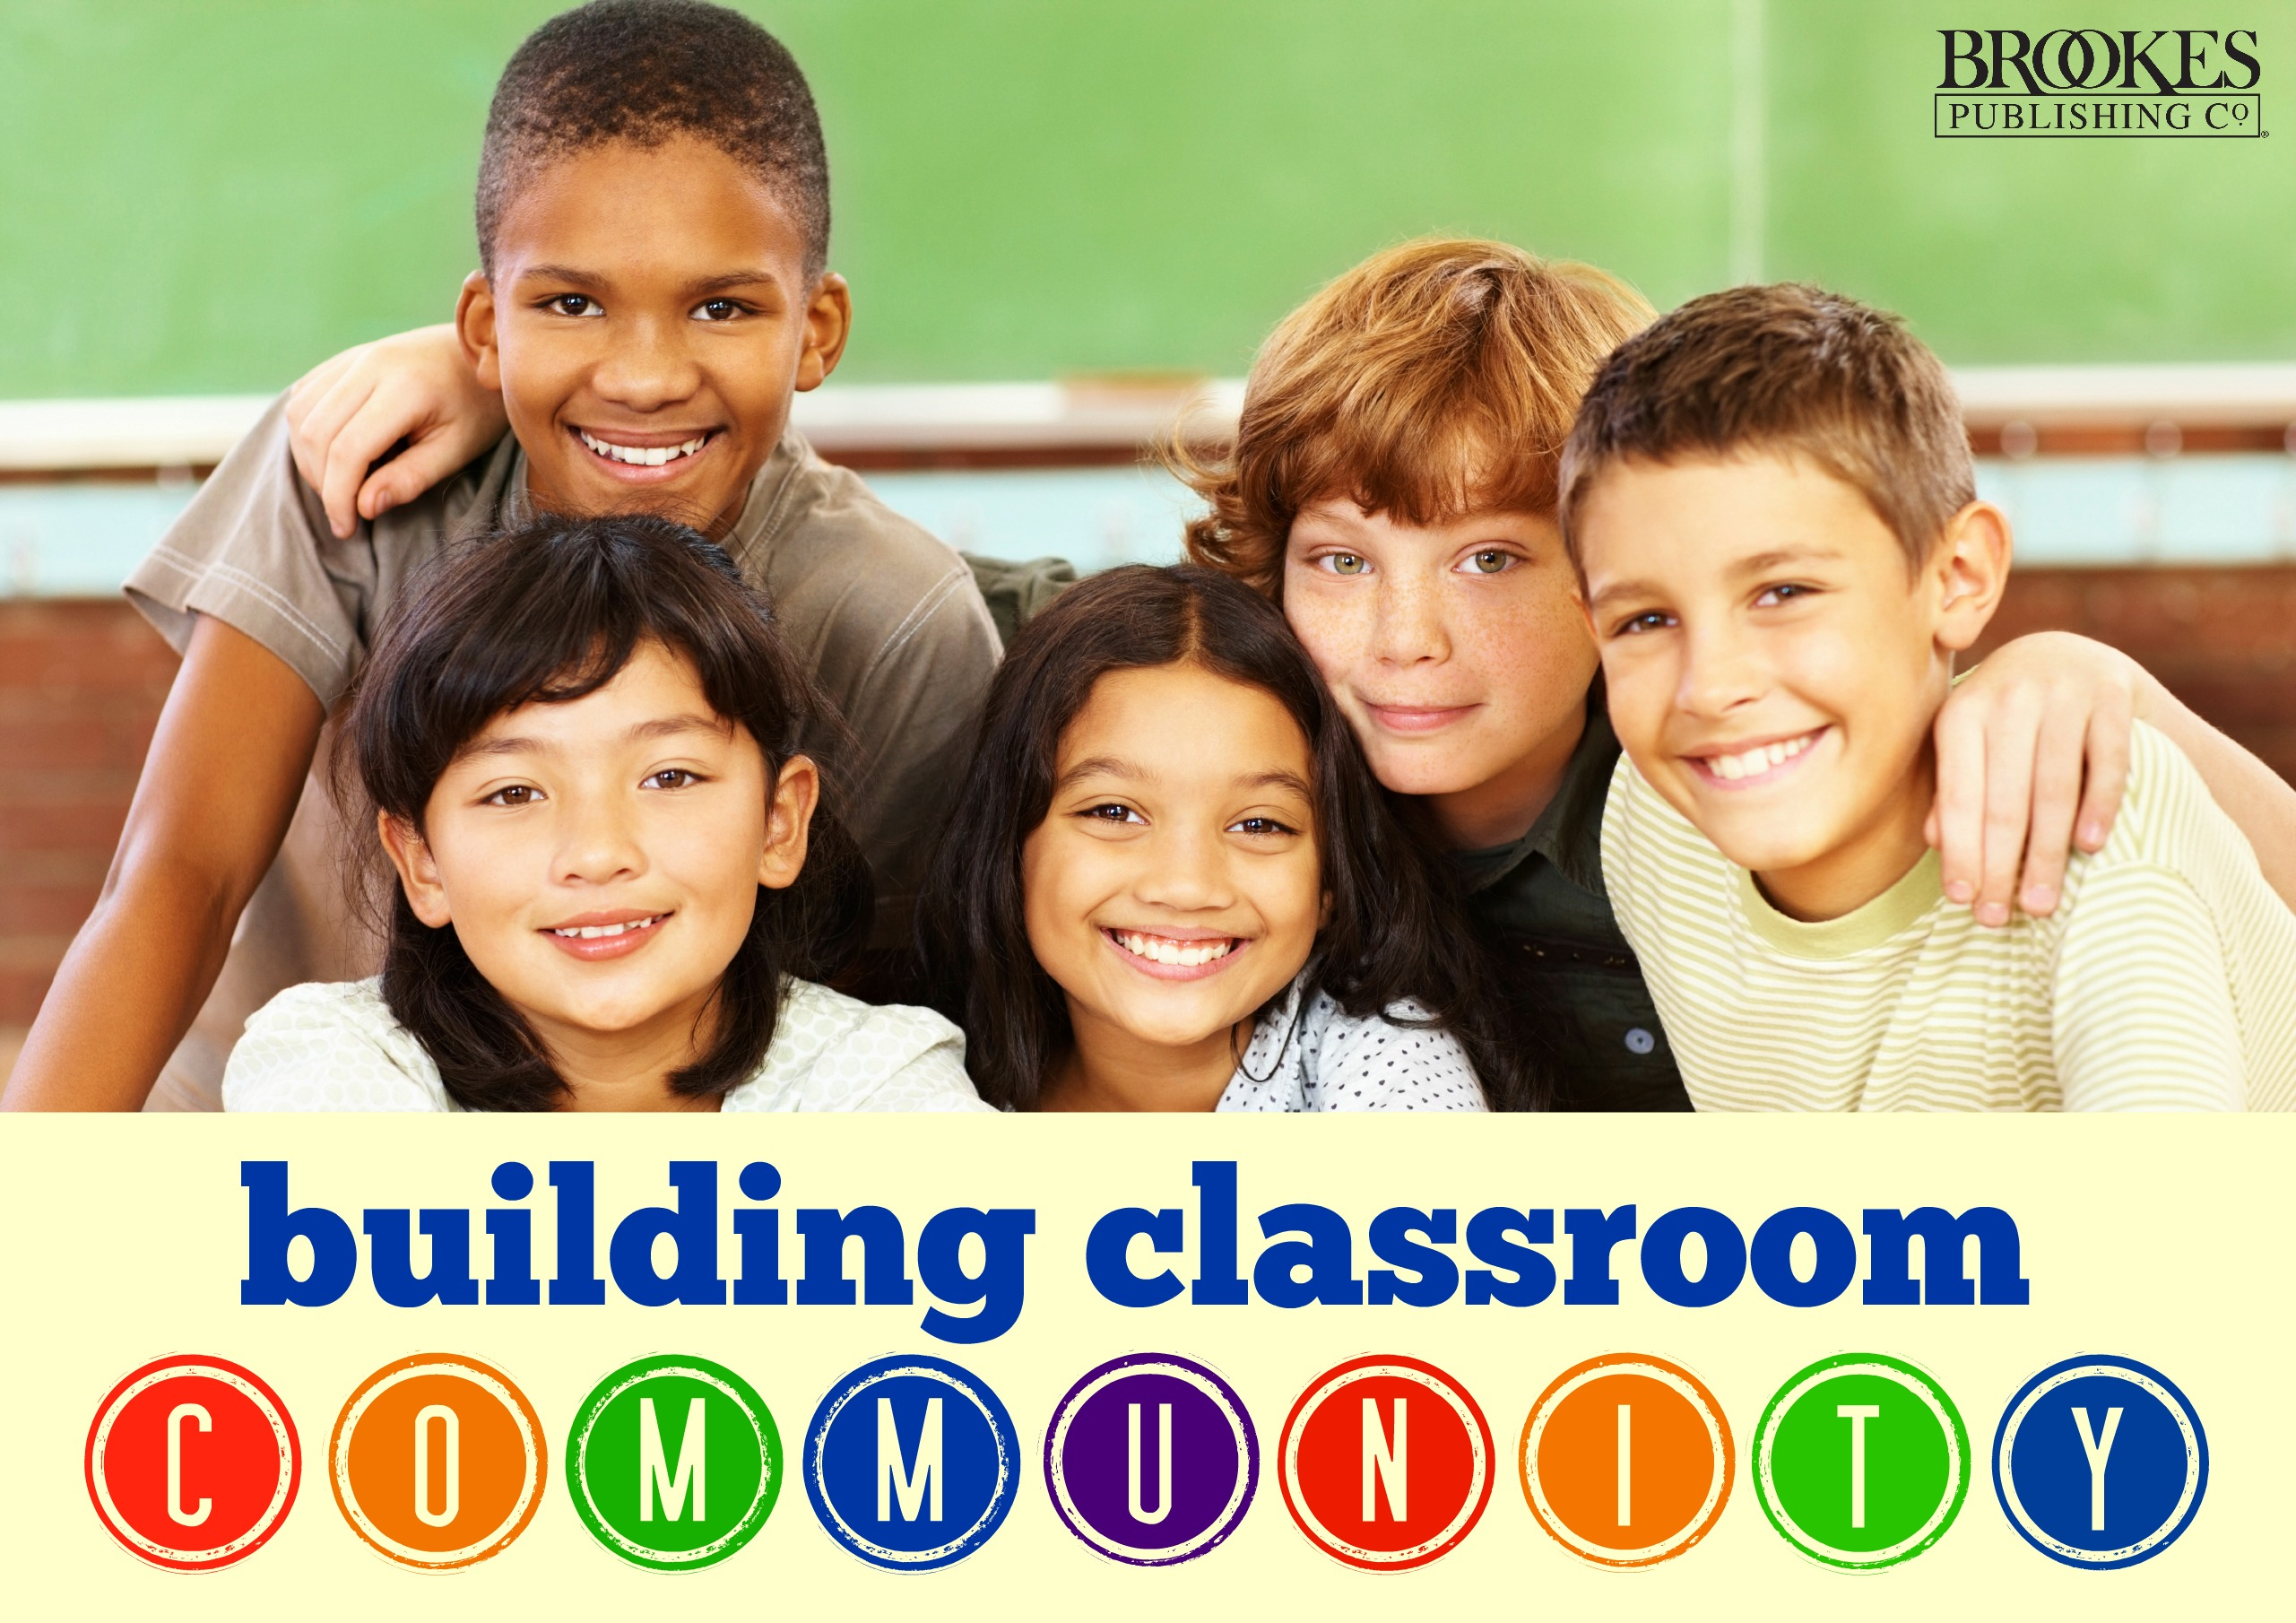 9 Ways to Establish Community in Your Classroom